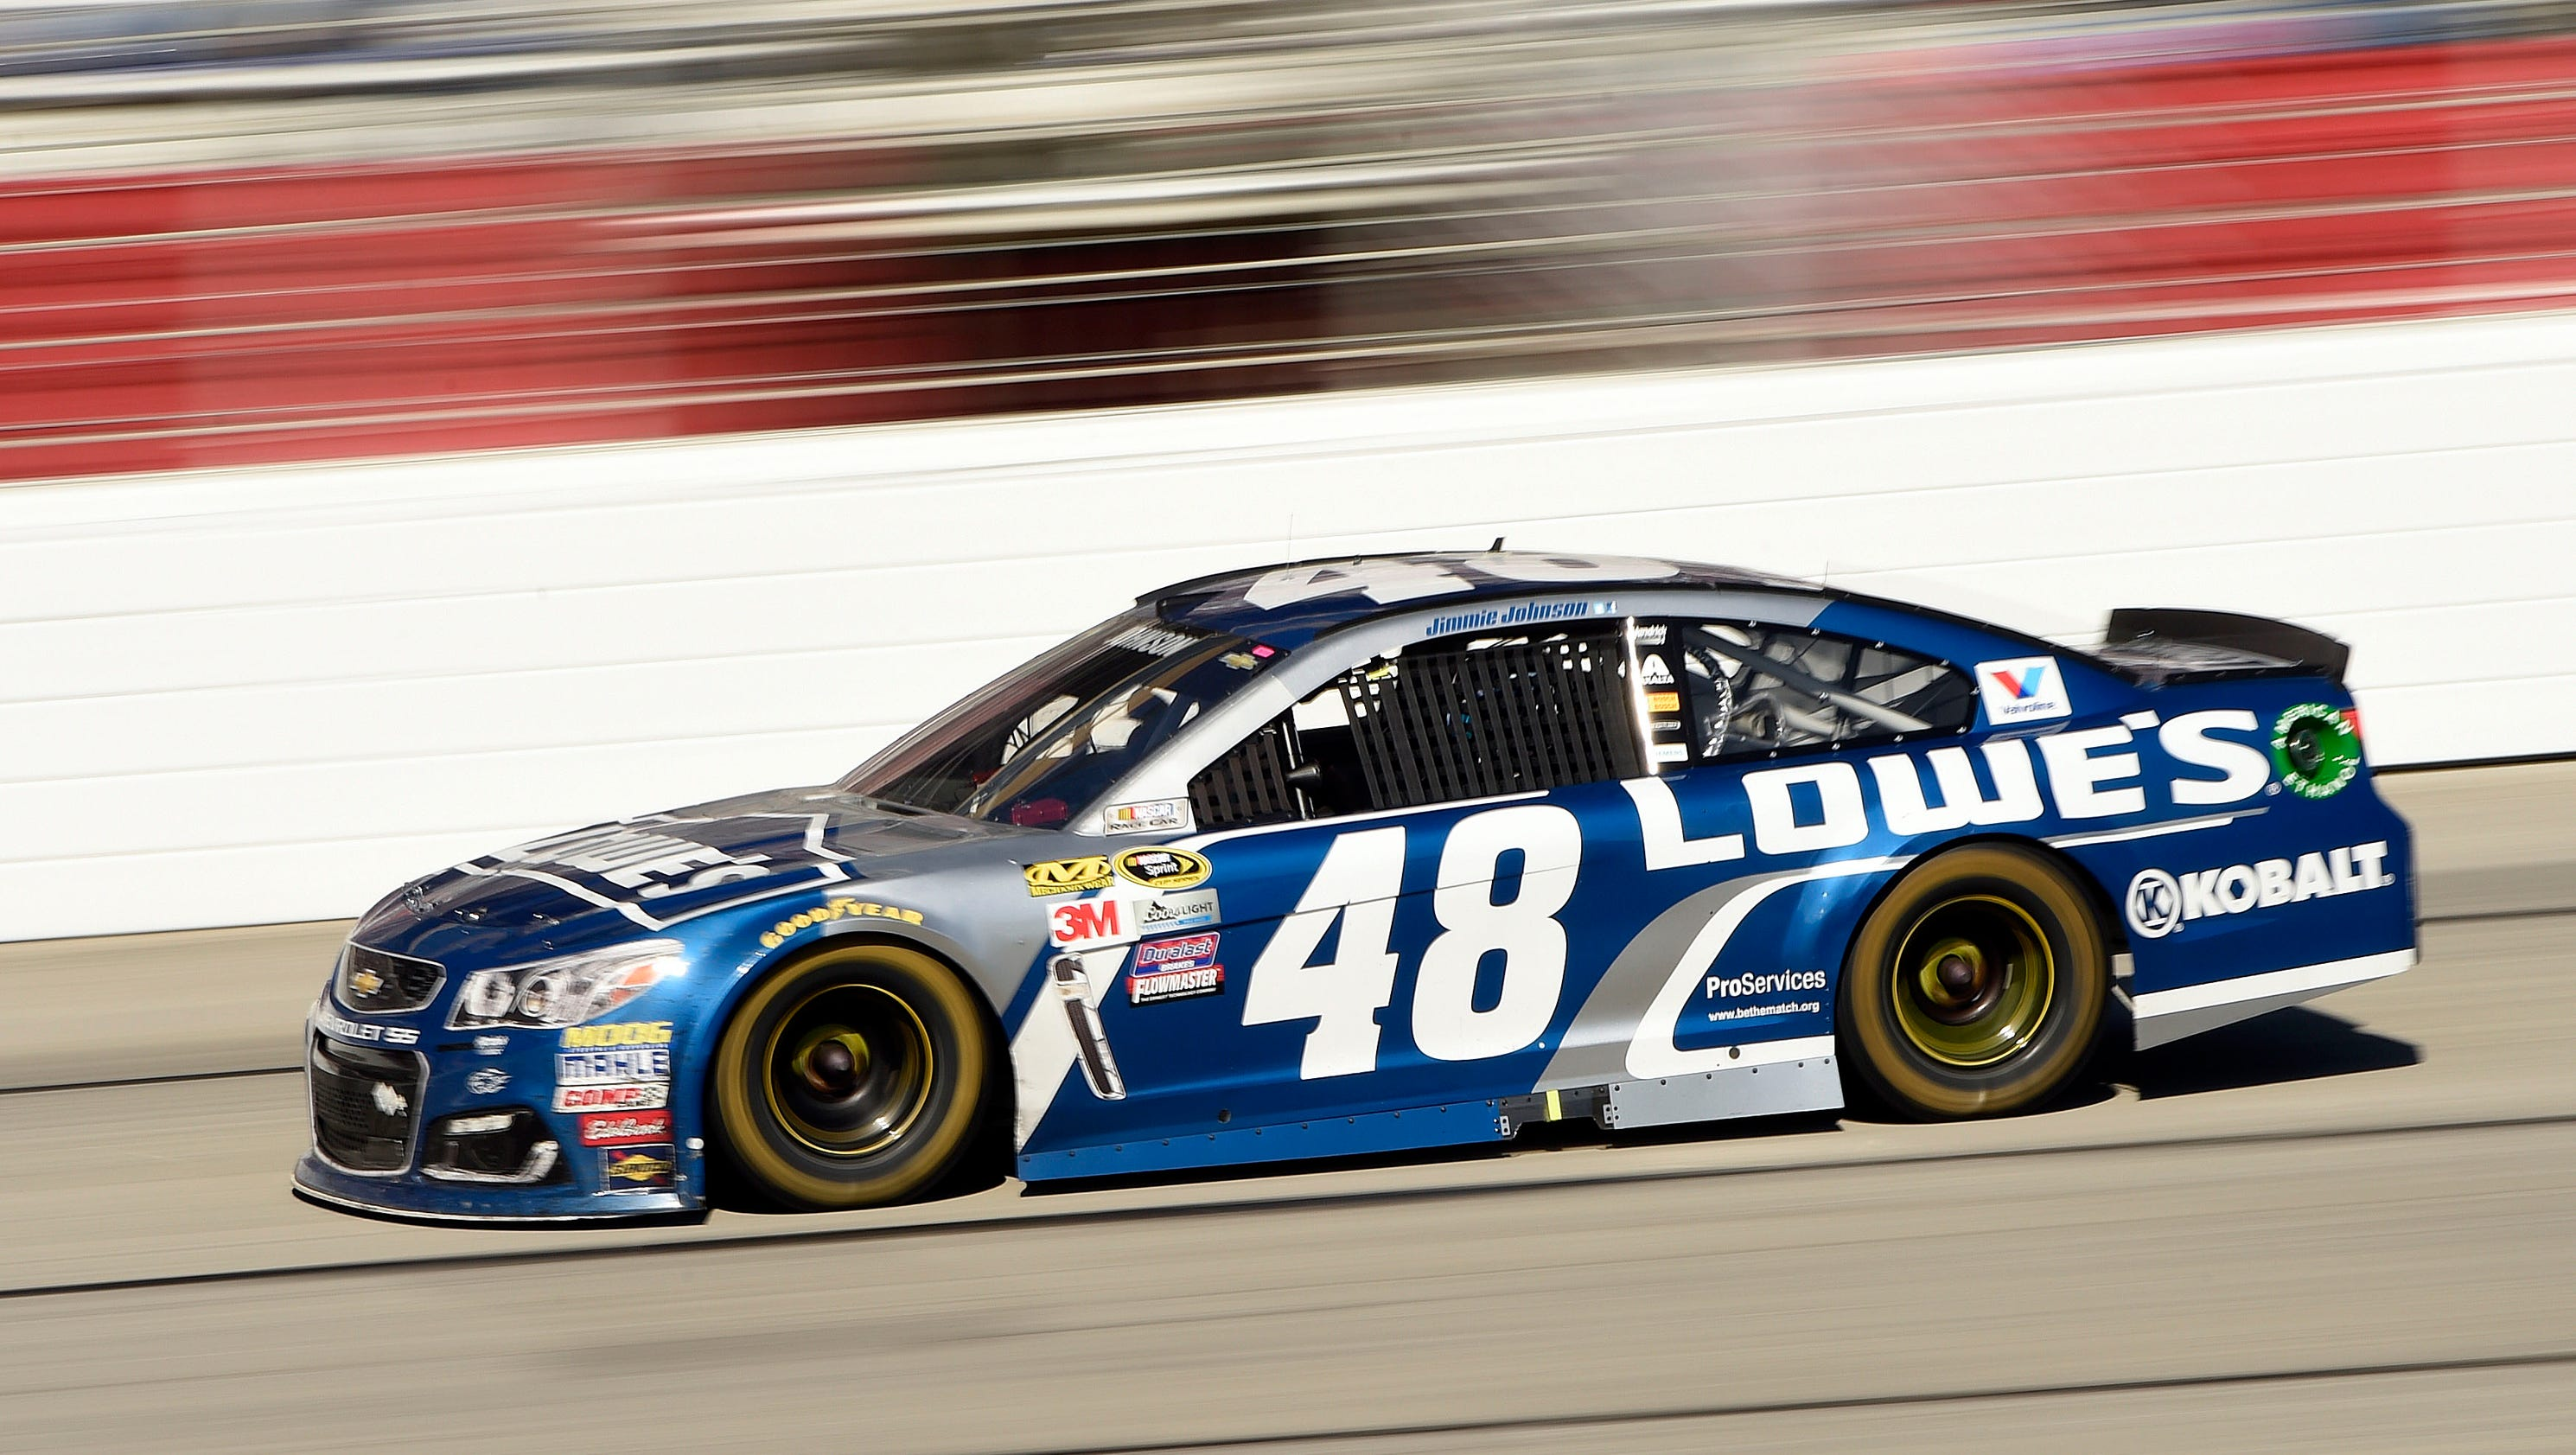 nascar login odds to win nascar race this weekend